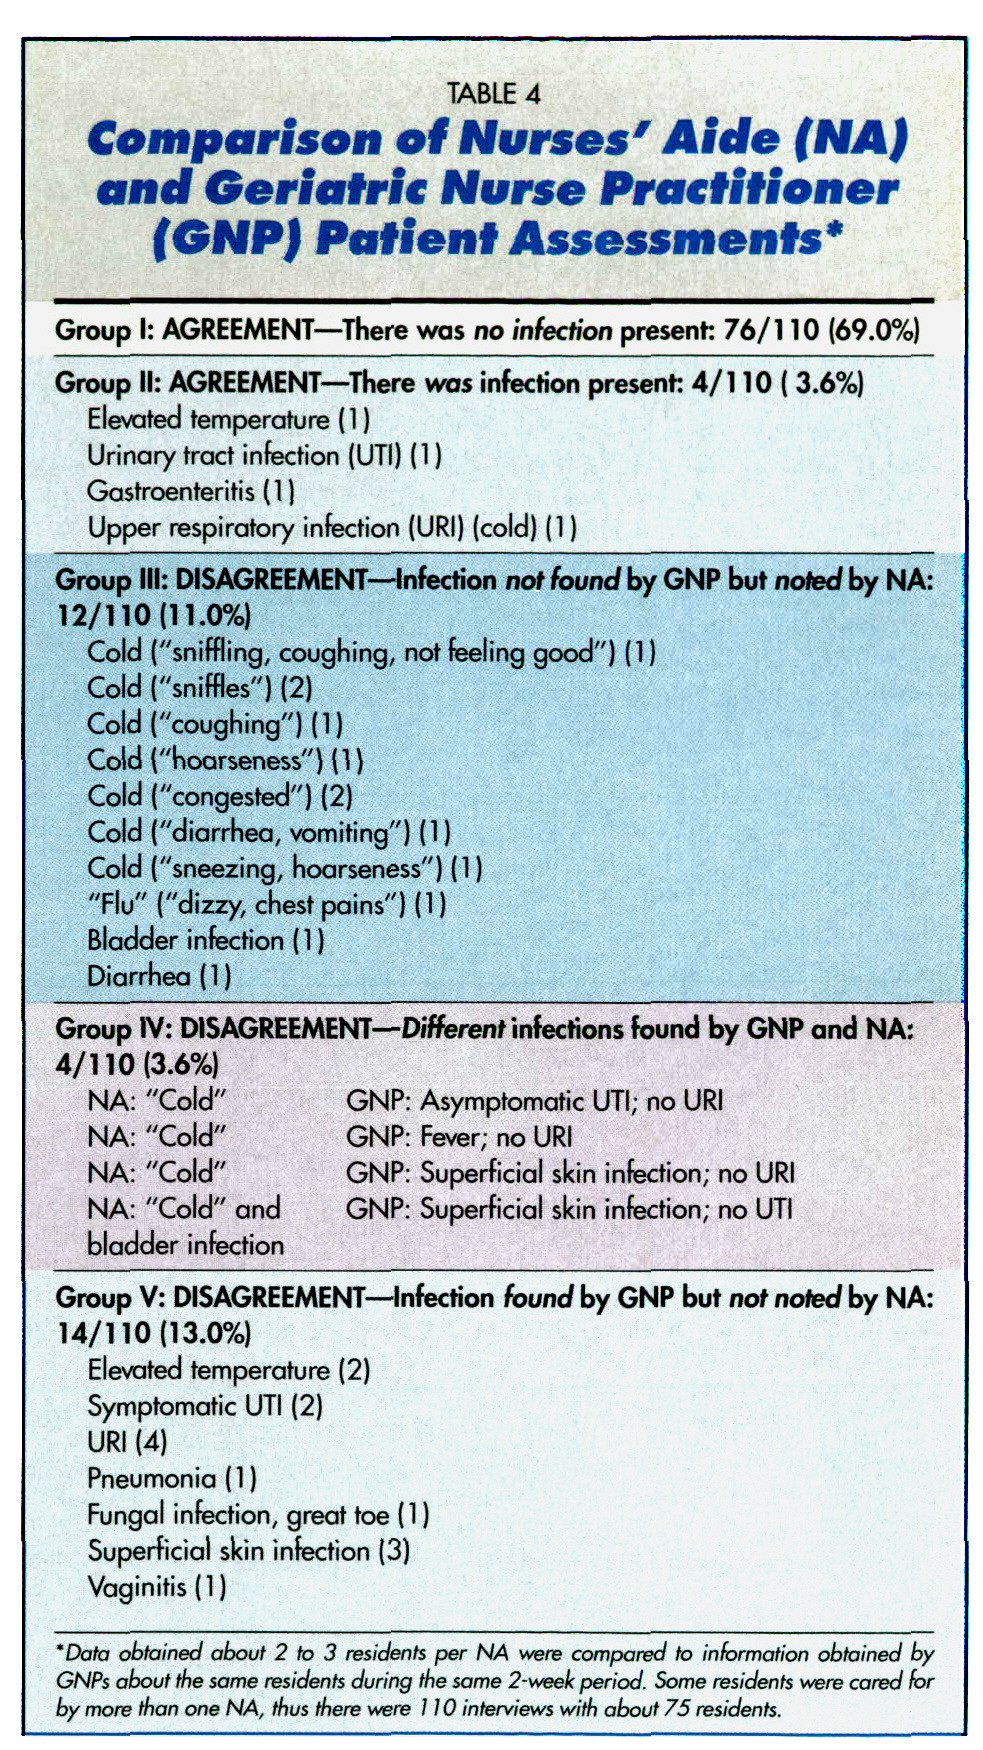 TABLE 4Comparison of Nurses' Aide (NA) and Geriatric Nurse Practitioner (GNP) Patient Assessments*